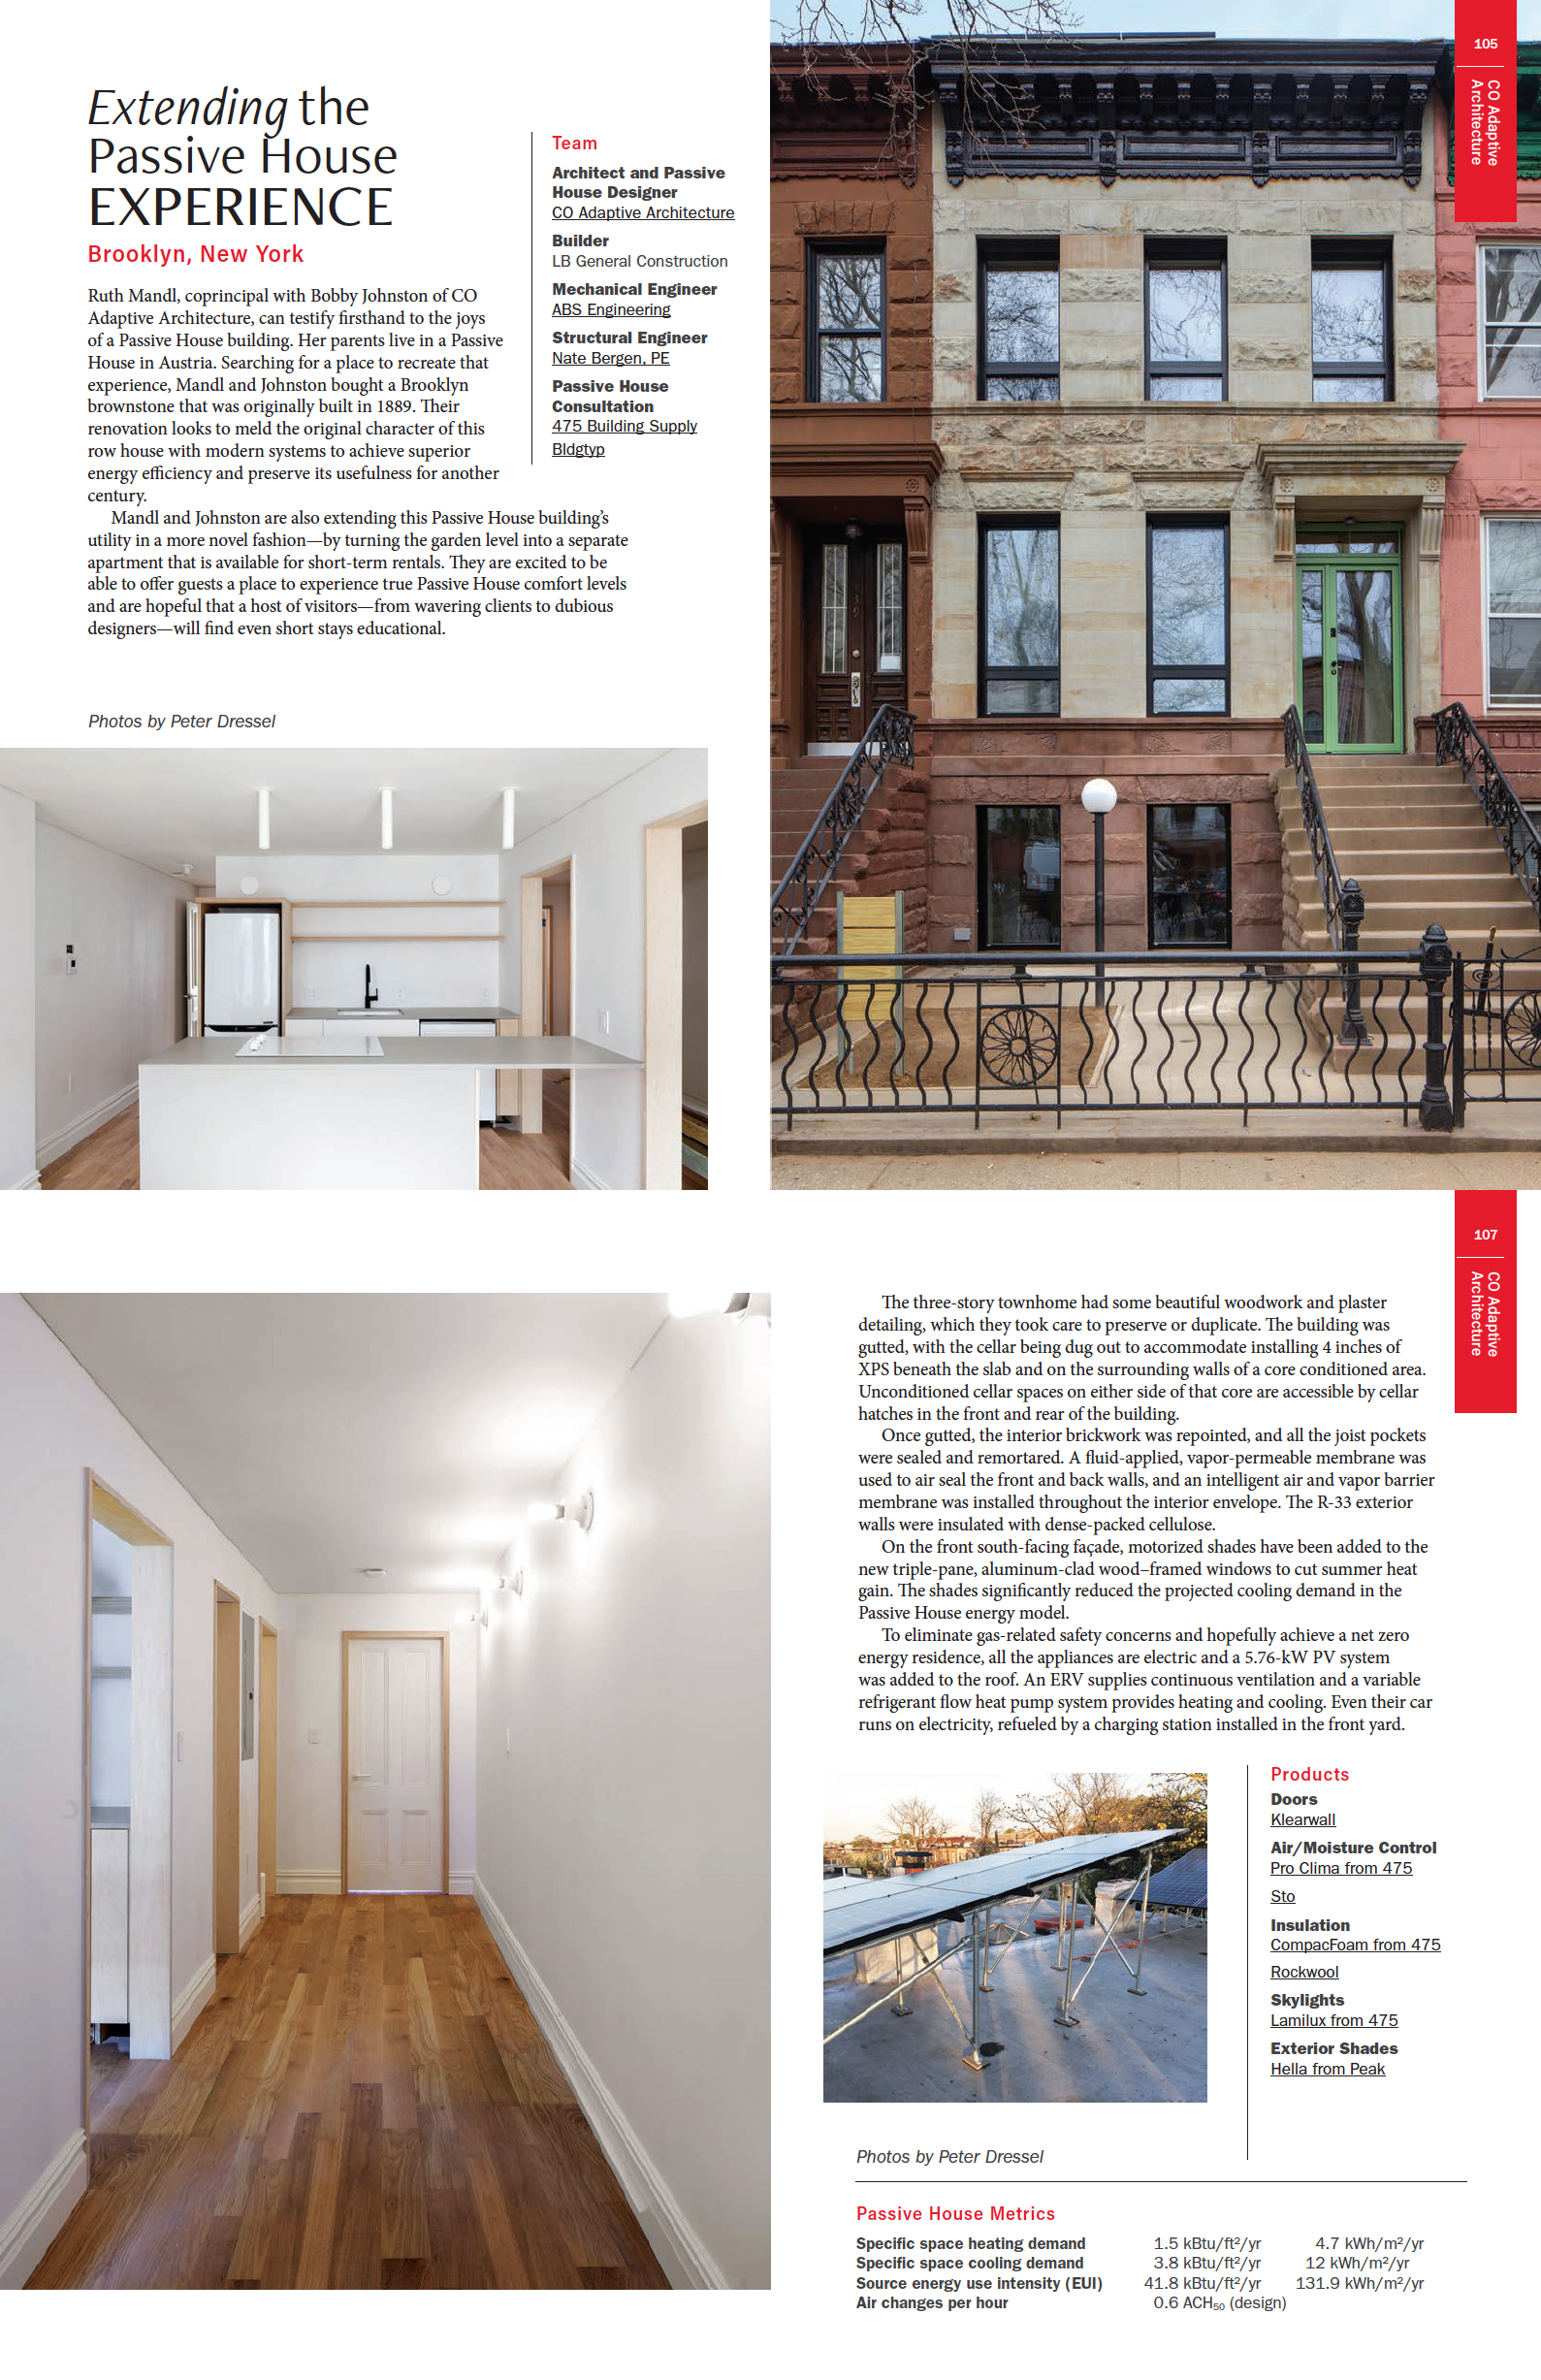 New York Passive House_Bedstuy.jpg